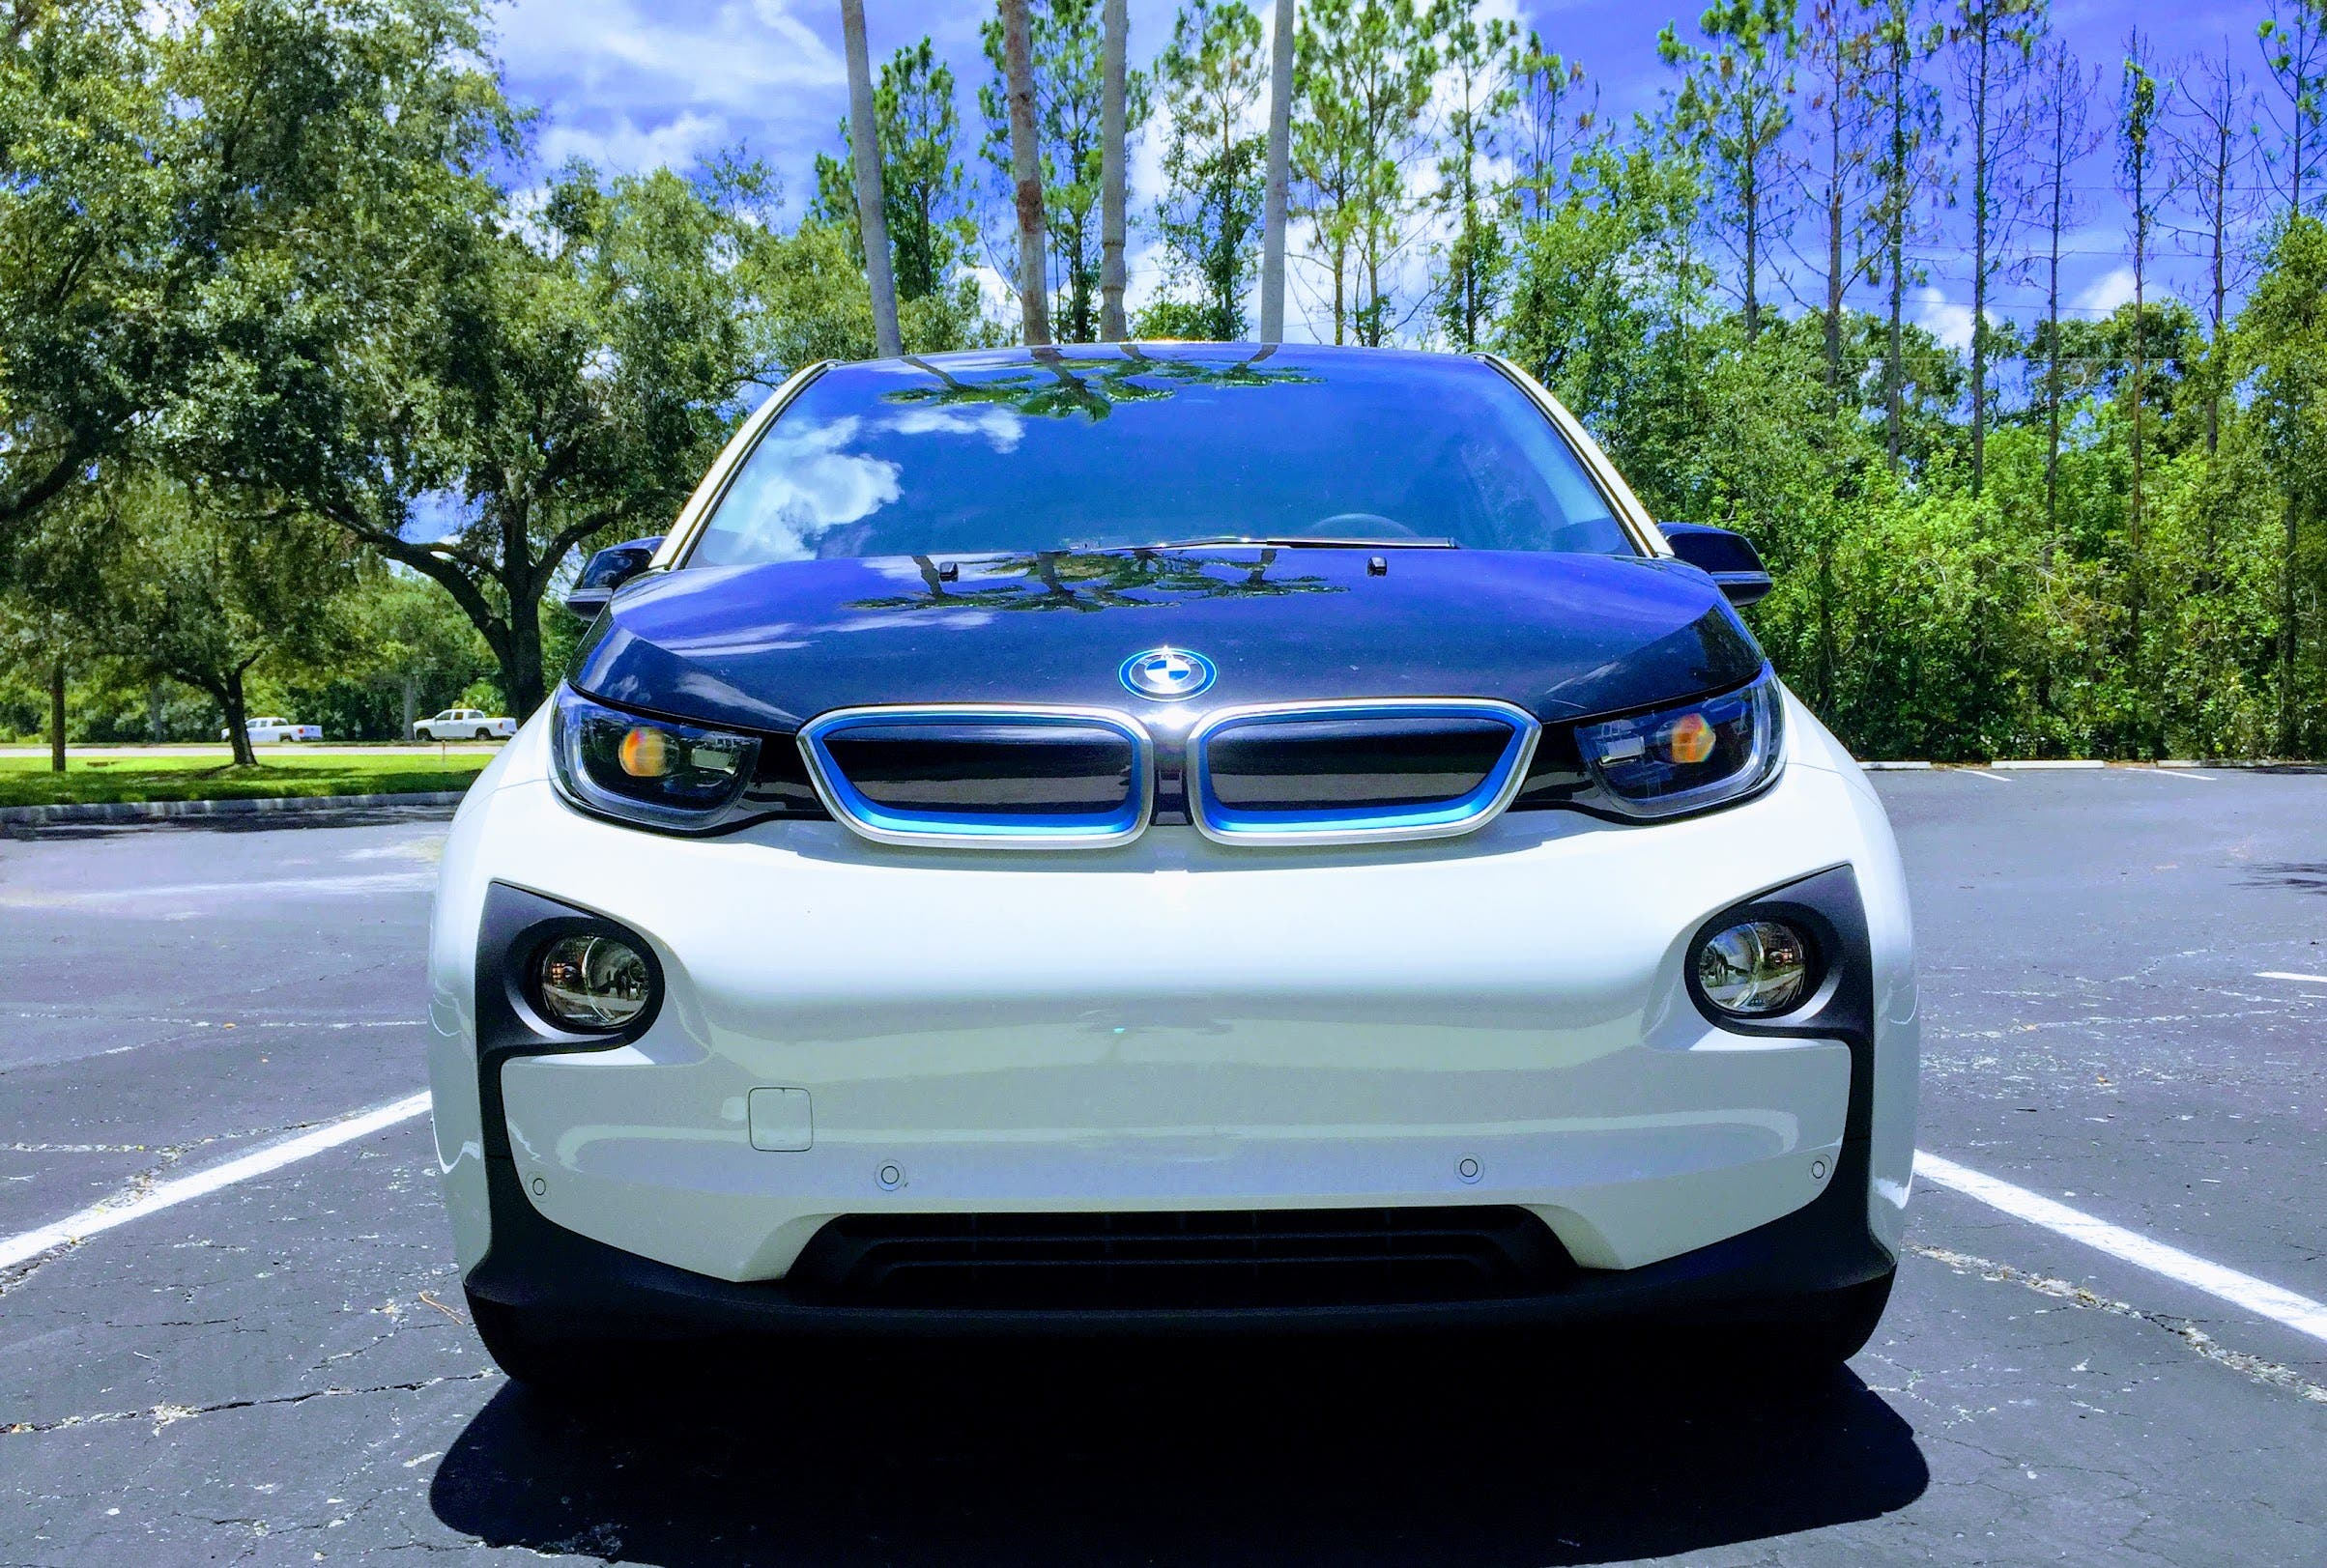 That S Not How The I3 Feels Tiny Profusely Light Has A Sporty Super Fun Superfood Fueled Acceleration